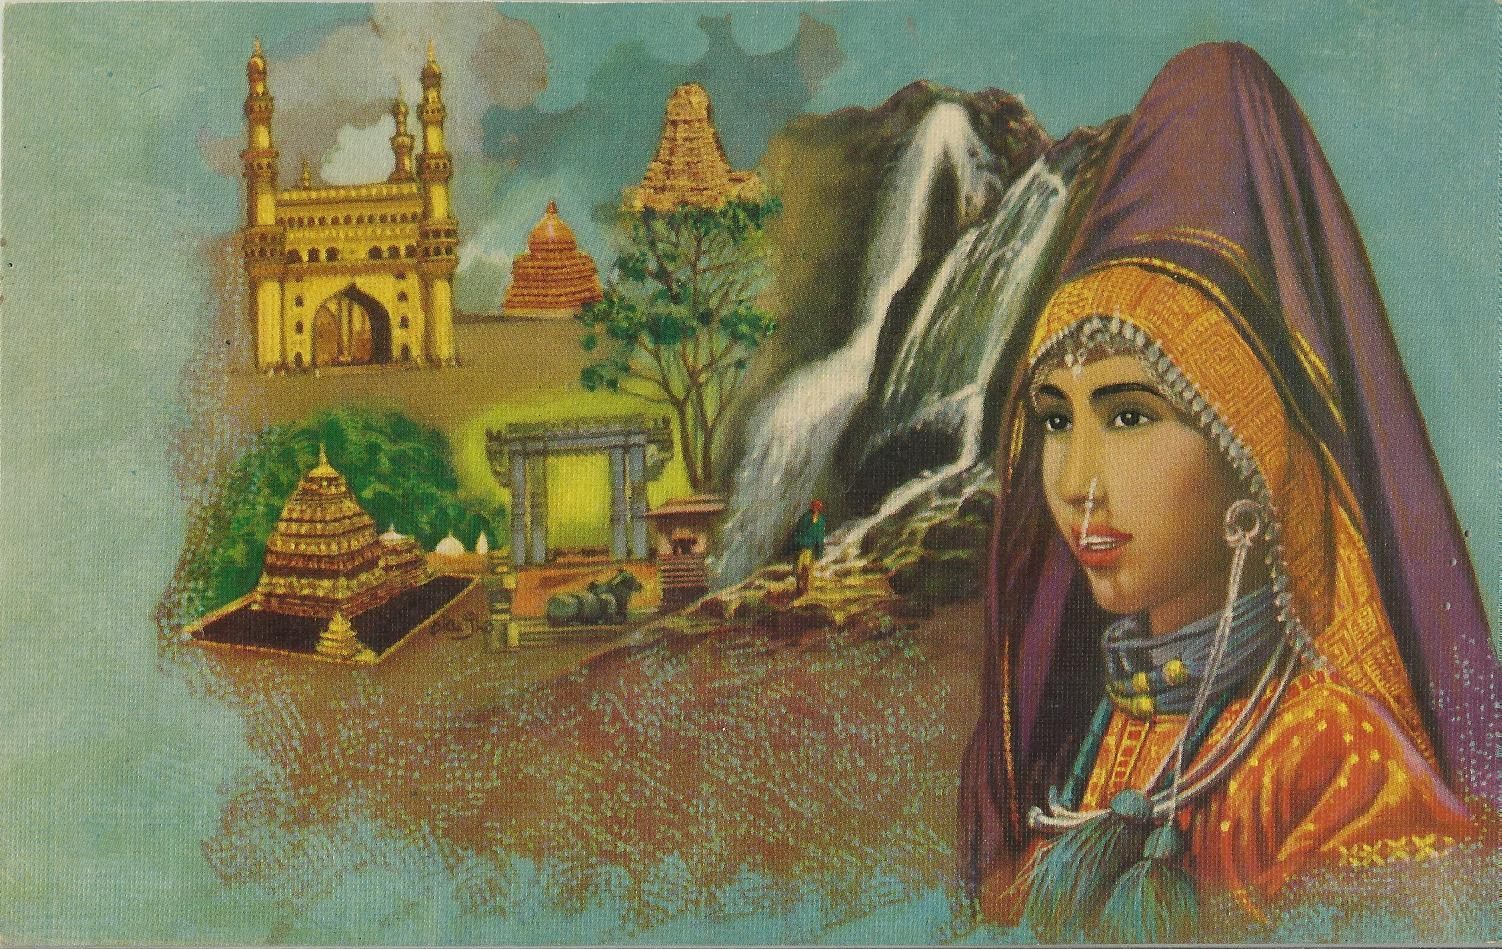 Heritage of India: Cultural Heritage of India vintage art prints